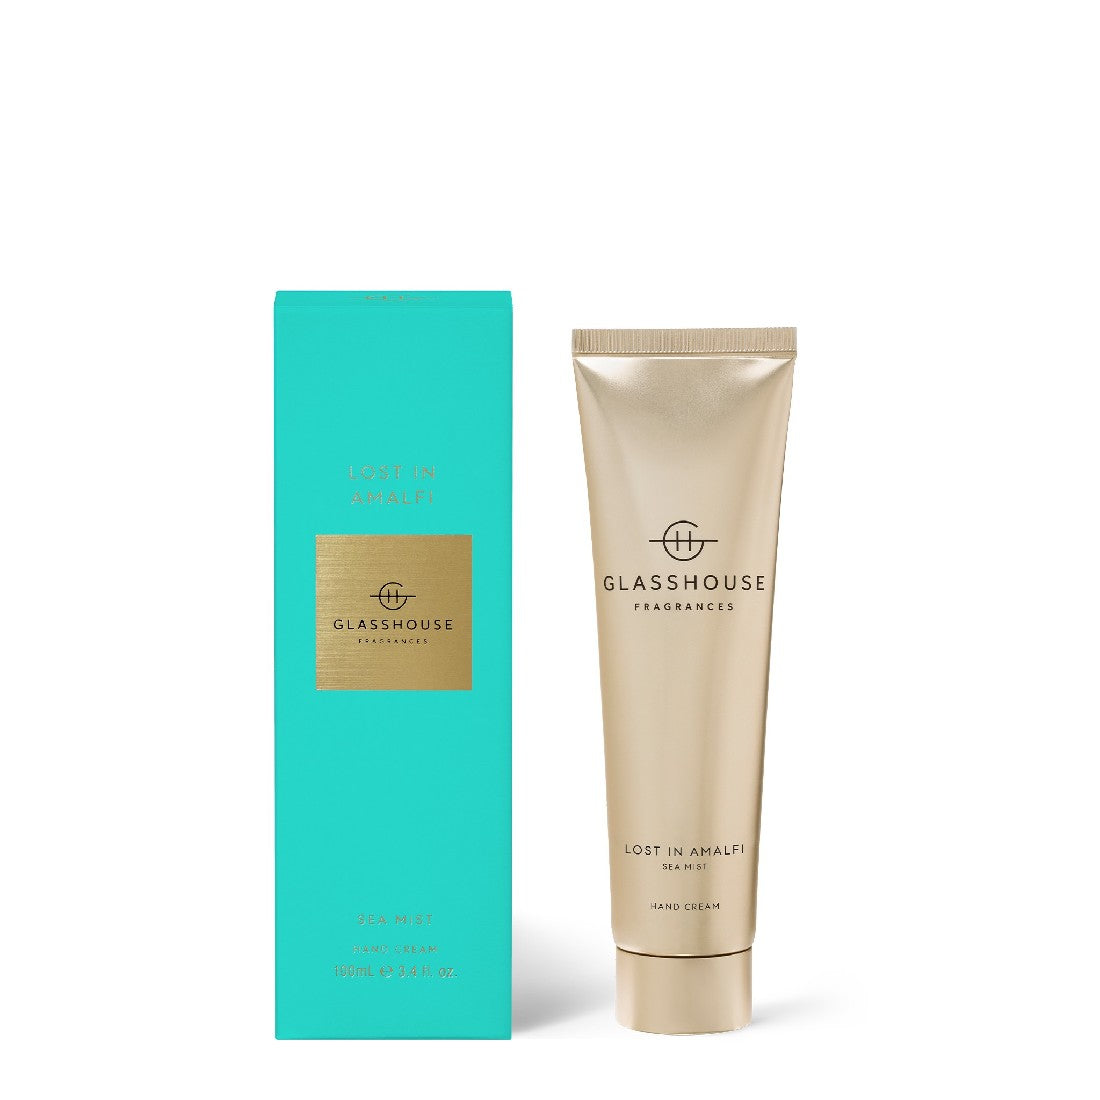 GLASSHOUSE SEA MIST- LOST IN AMALFI 100ml HAND CREAM